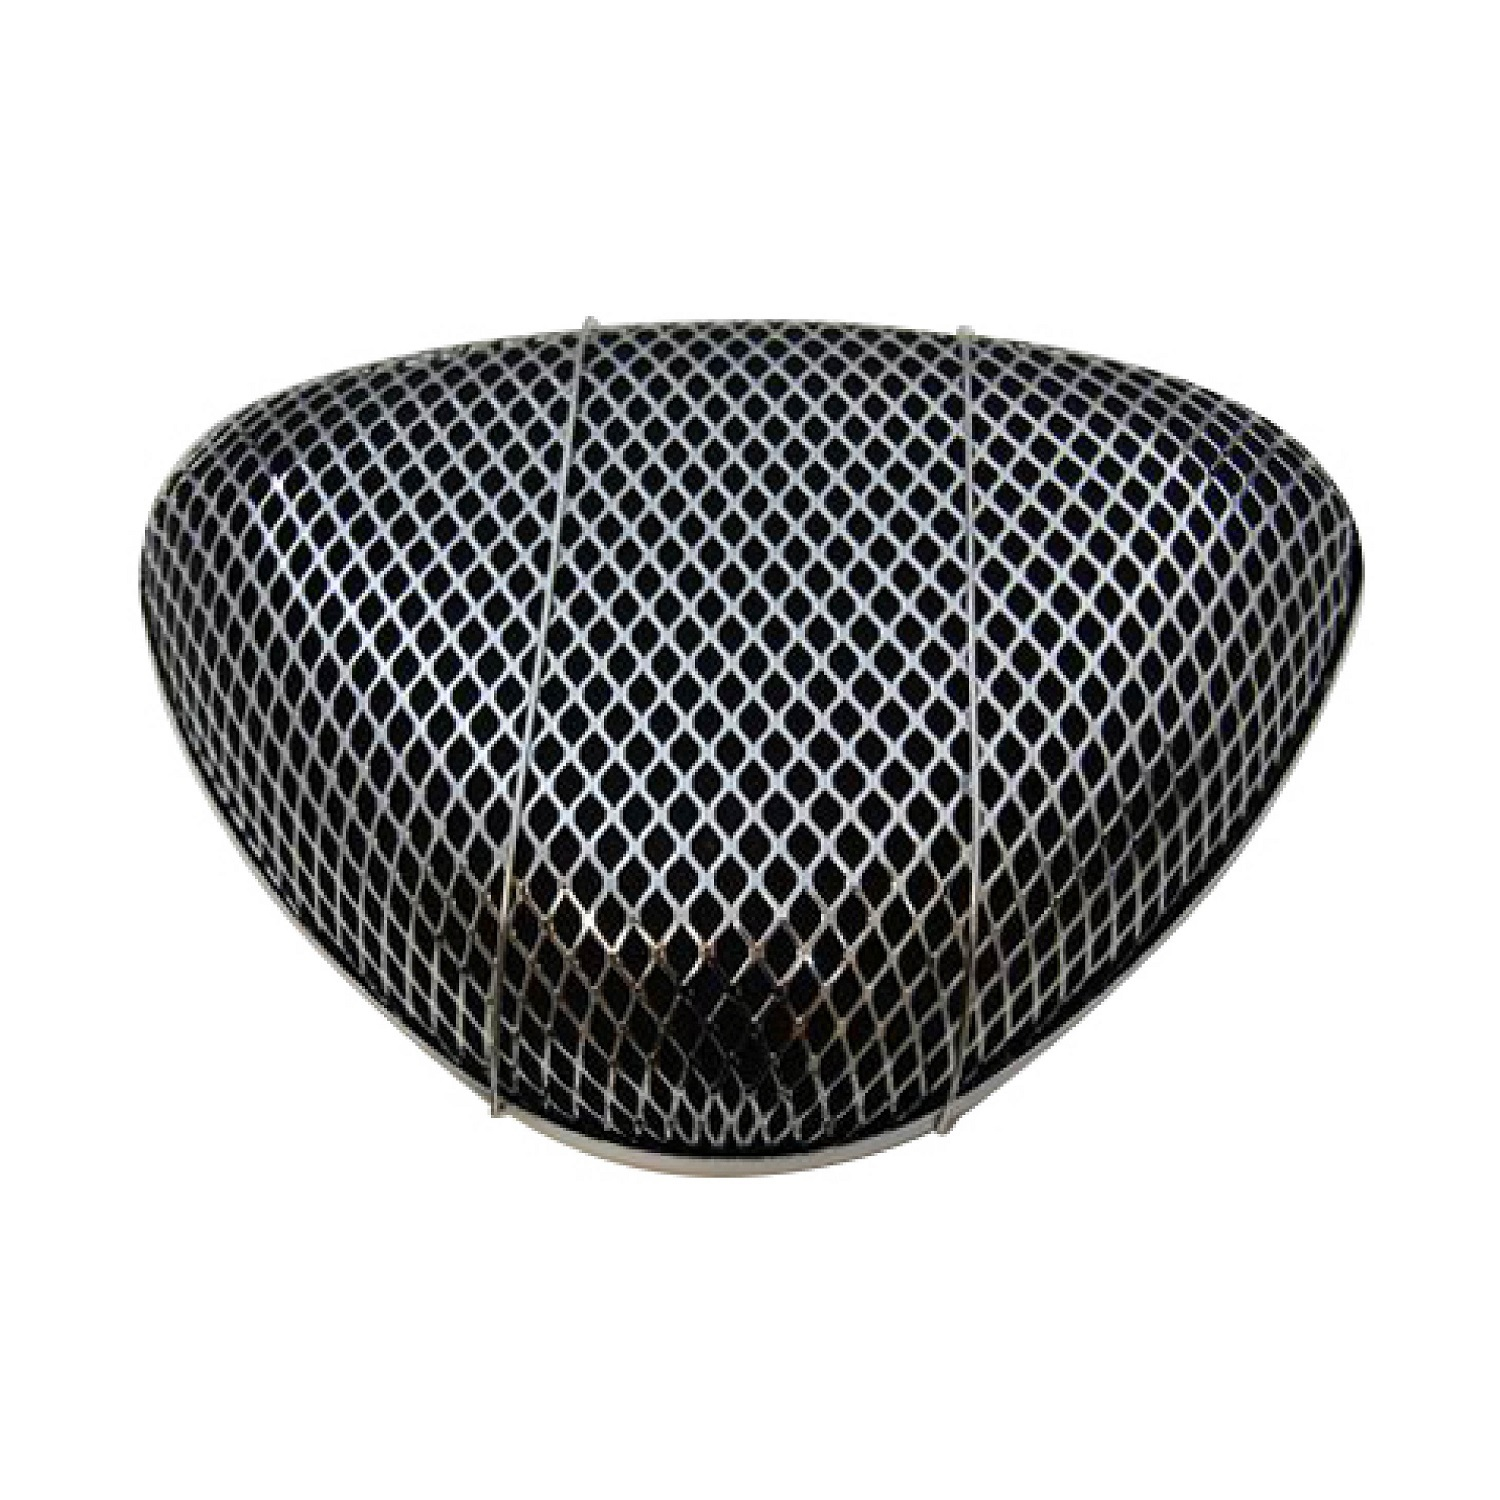 Racing Power Company R2196 Air Cleaner Assembly, Super Flow Open Screen, 11-3/4 x 8-3/4 in Triangle, 3-1/4 in Tall, 5-1/8 in Carb Flange, Raised Base, Steel, Chrome, Kit